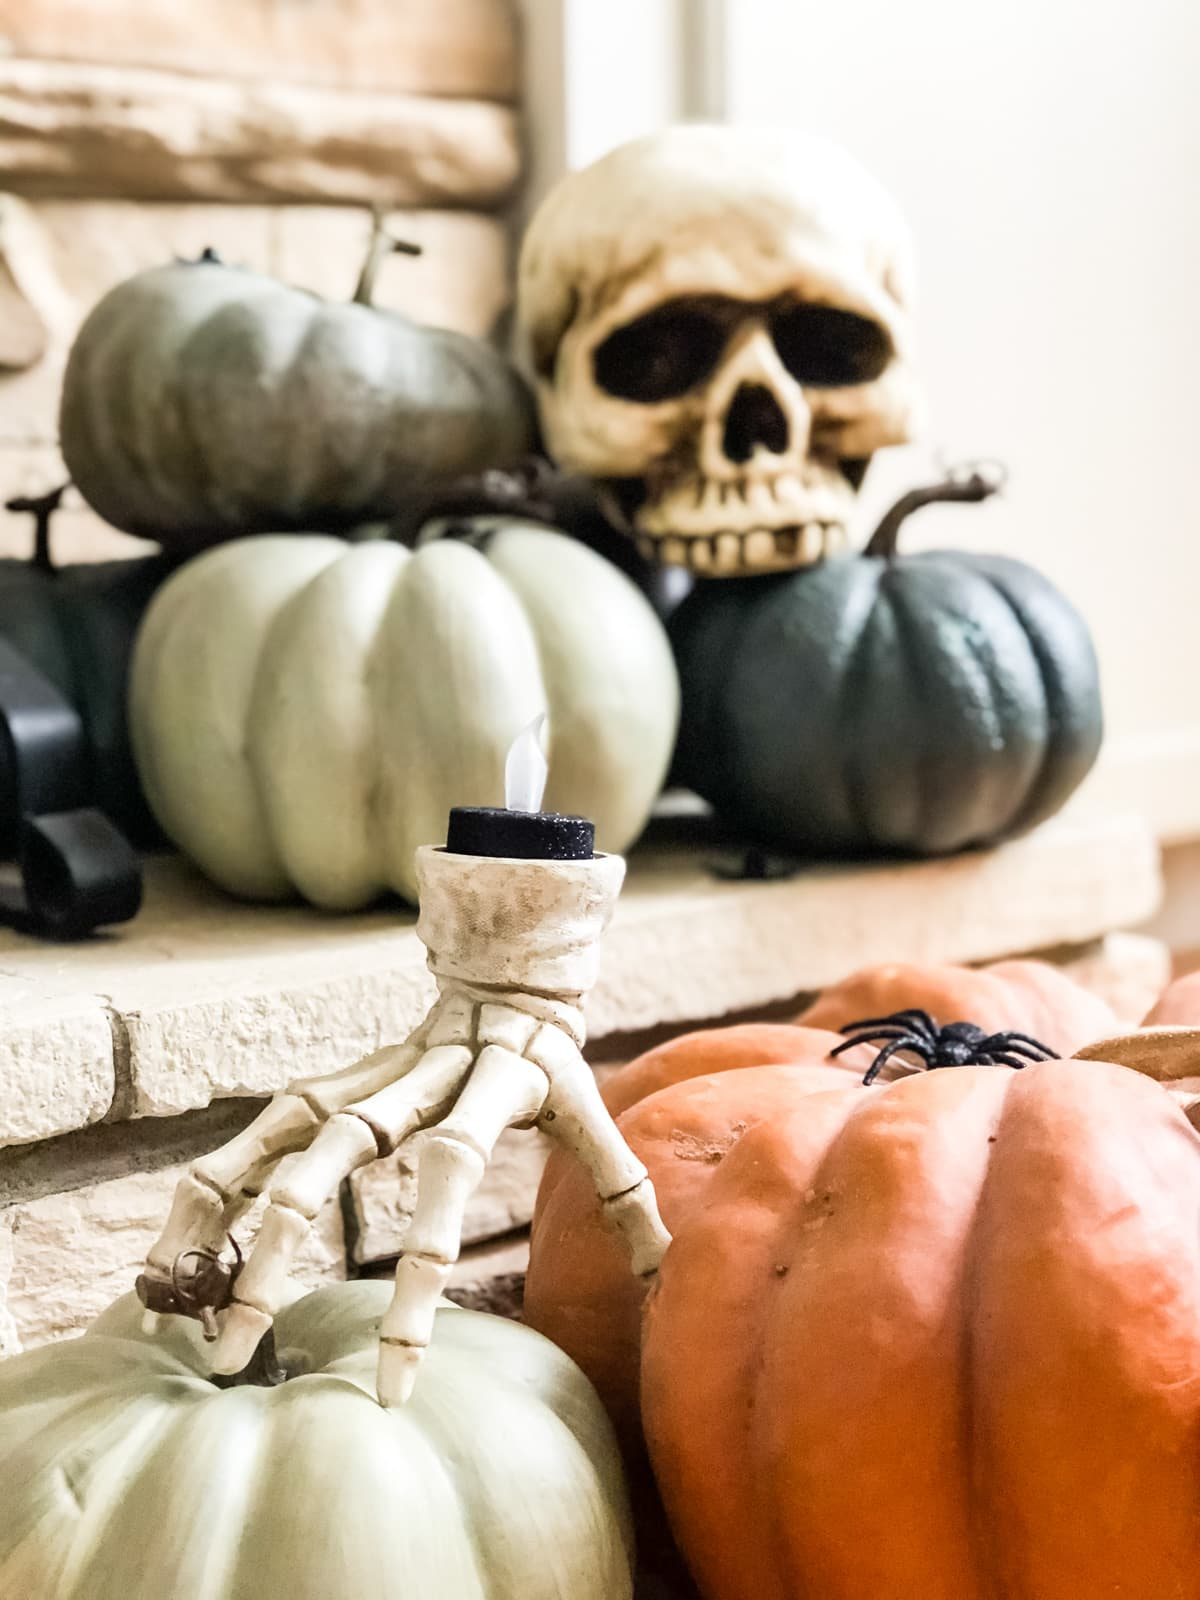 A skeleton hand candle holder among pumpkins